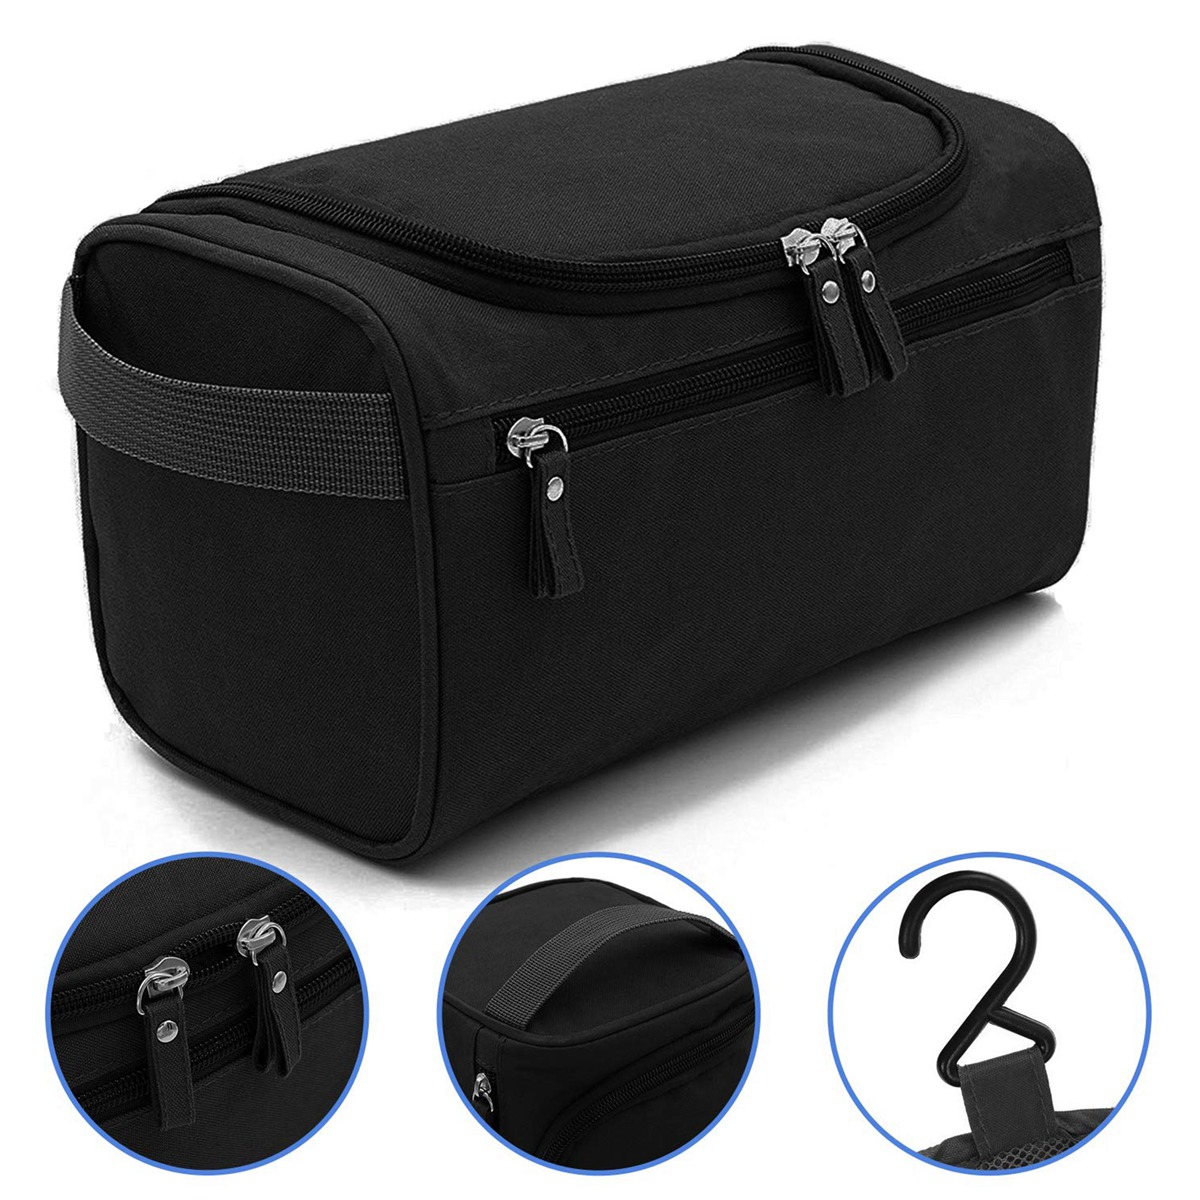 7013e4647b9a Details about Travel Toiletry Bag Dopp Kit Organizer for Men - Large  Waterproof Shaving bags